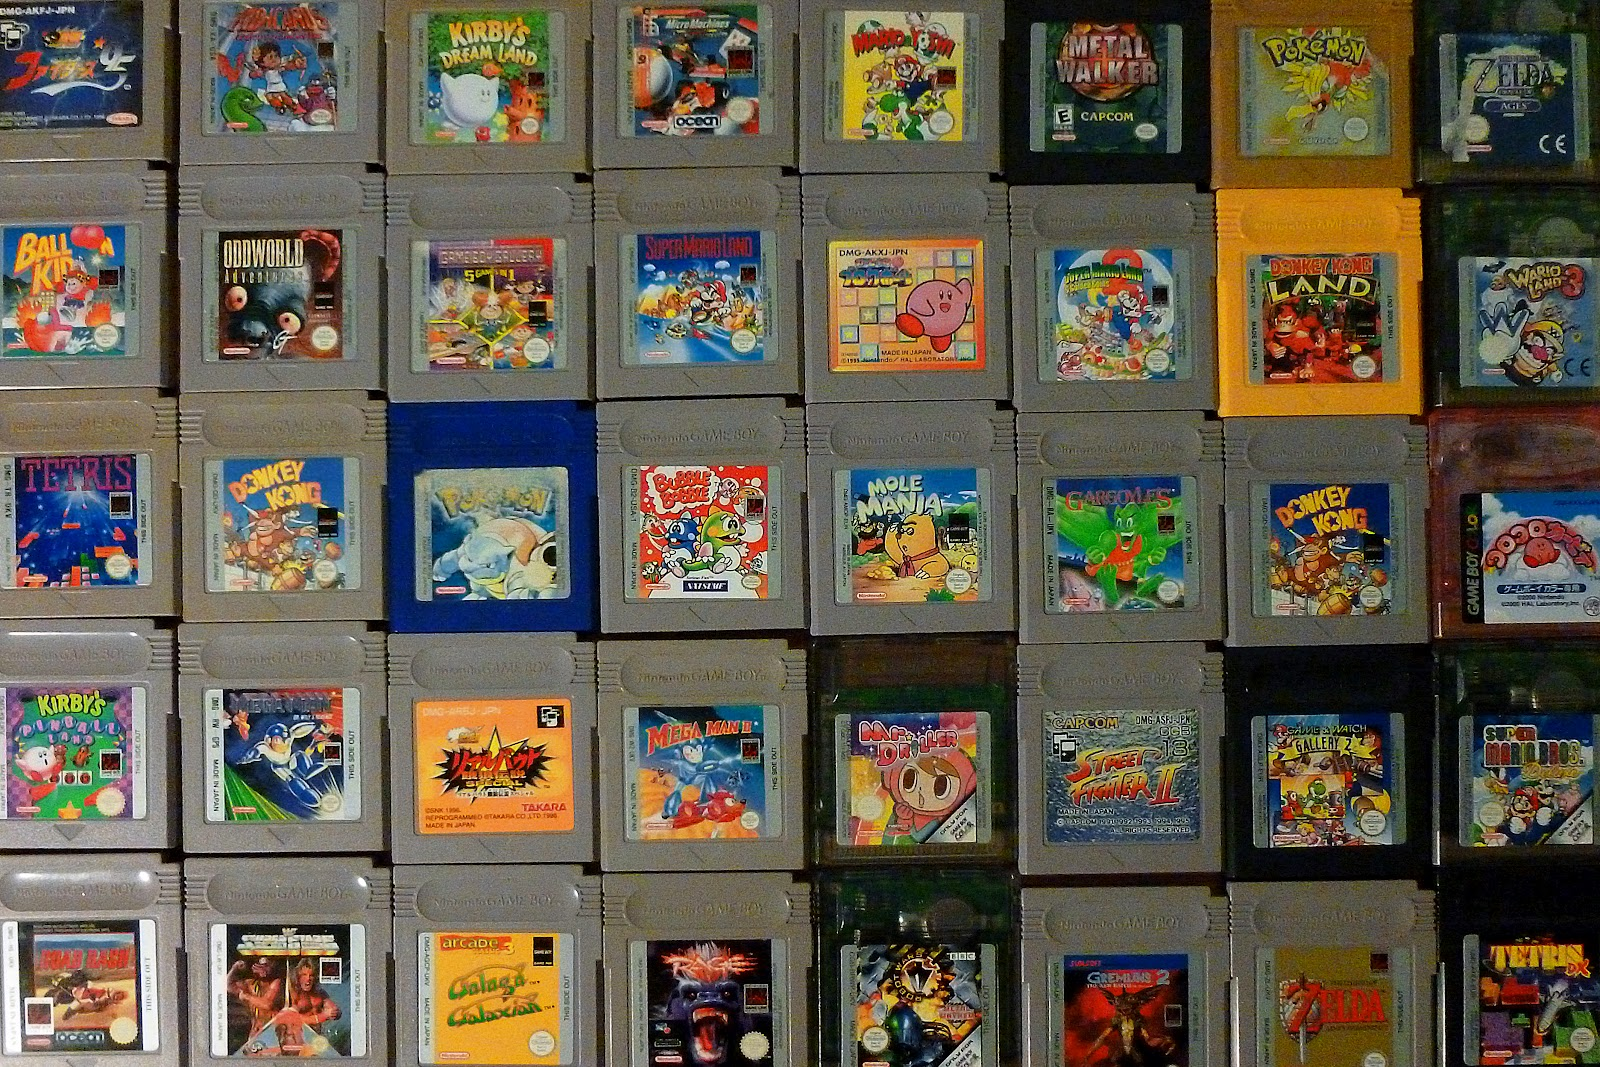 Obsession #2: Game Boy / Game Boy Color games